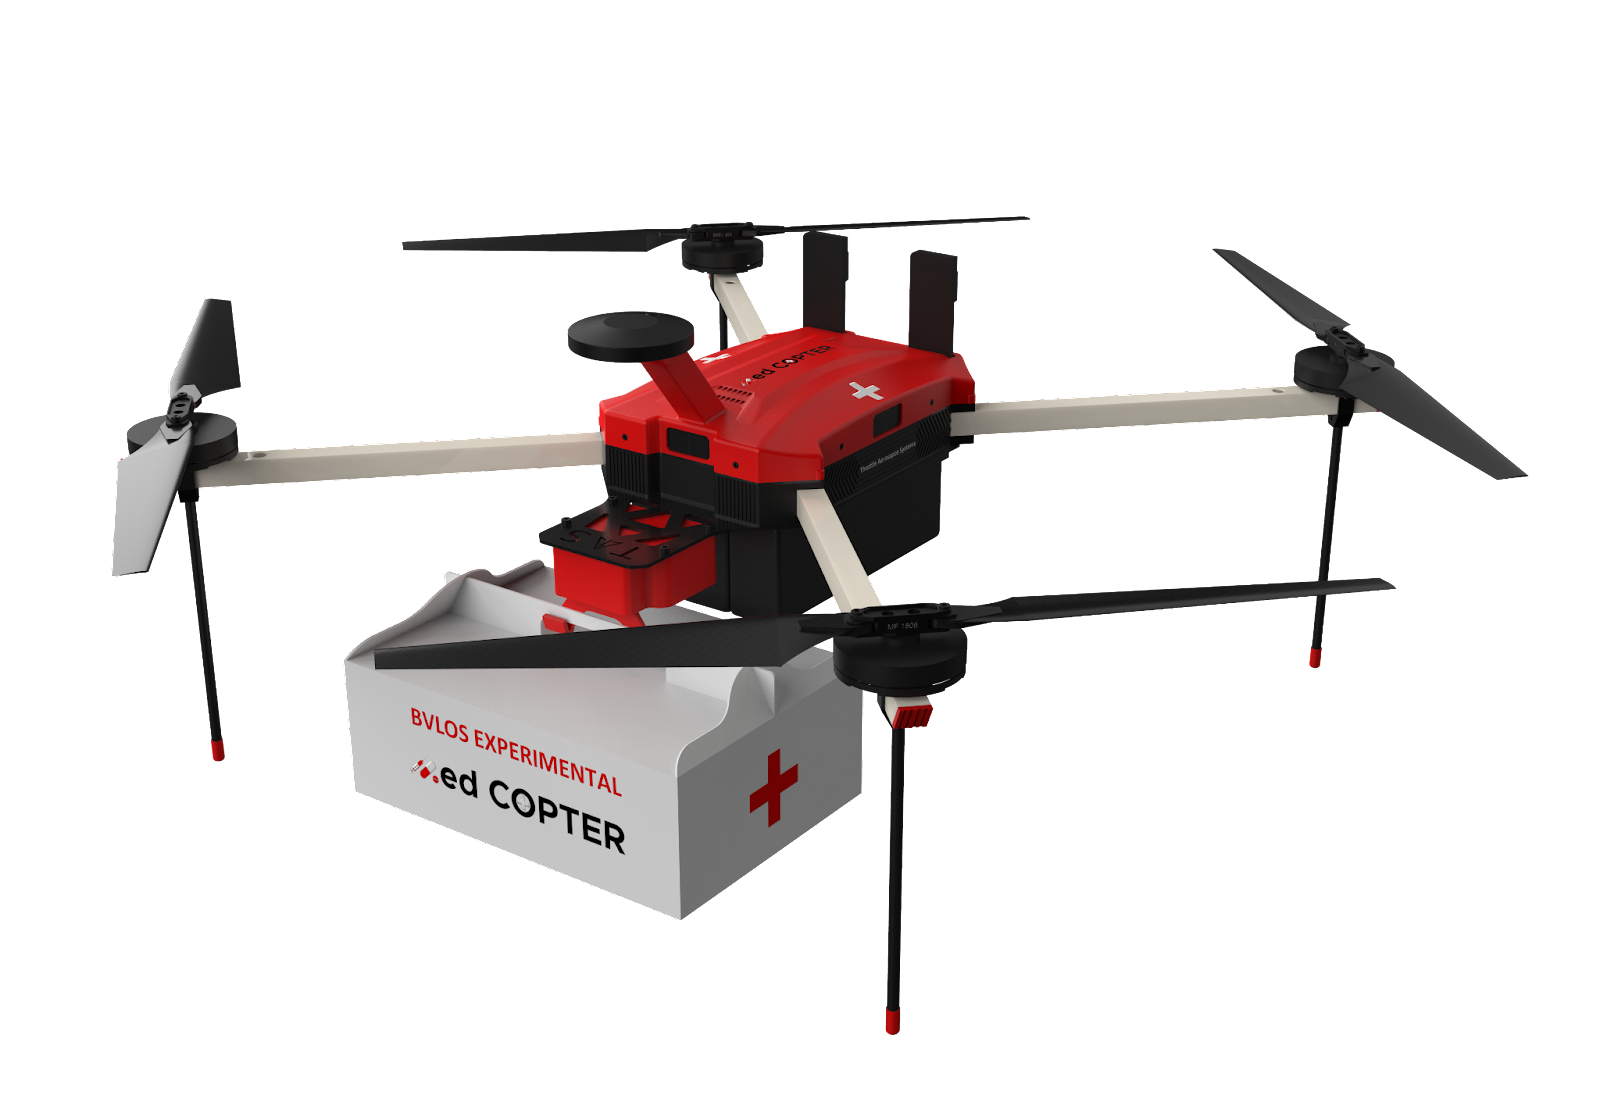 The MedCOPTER-X4 Drone